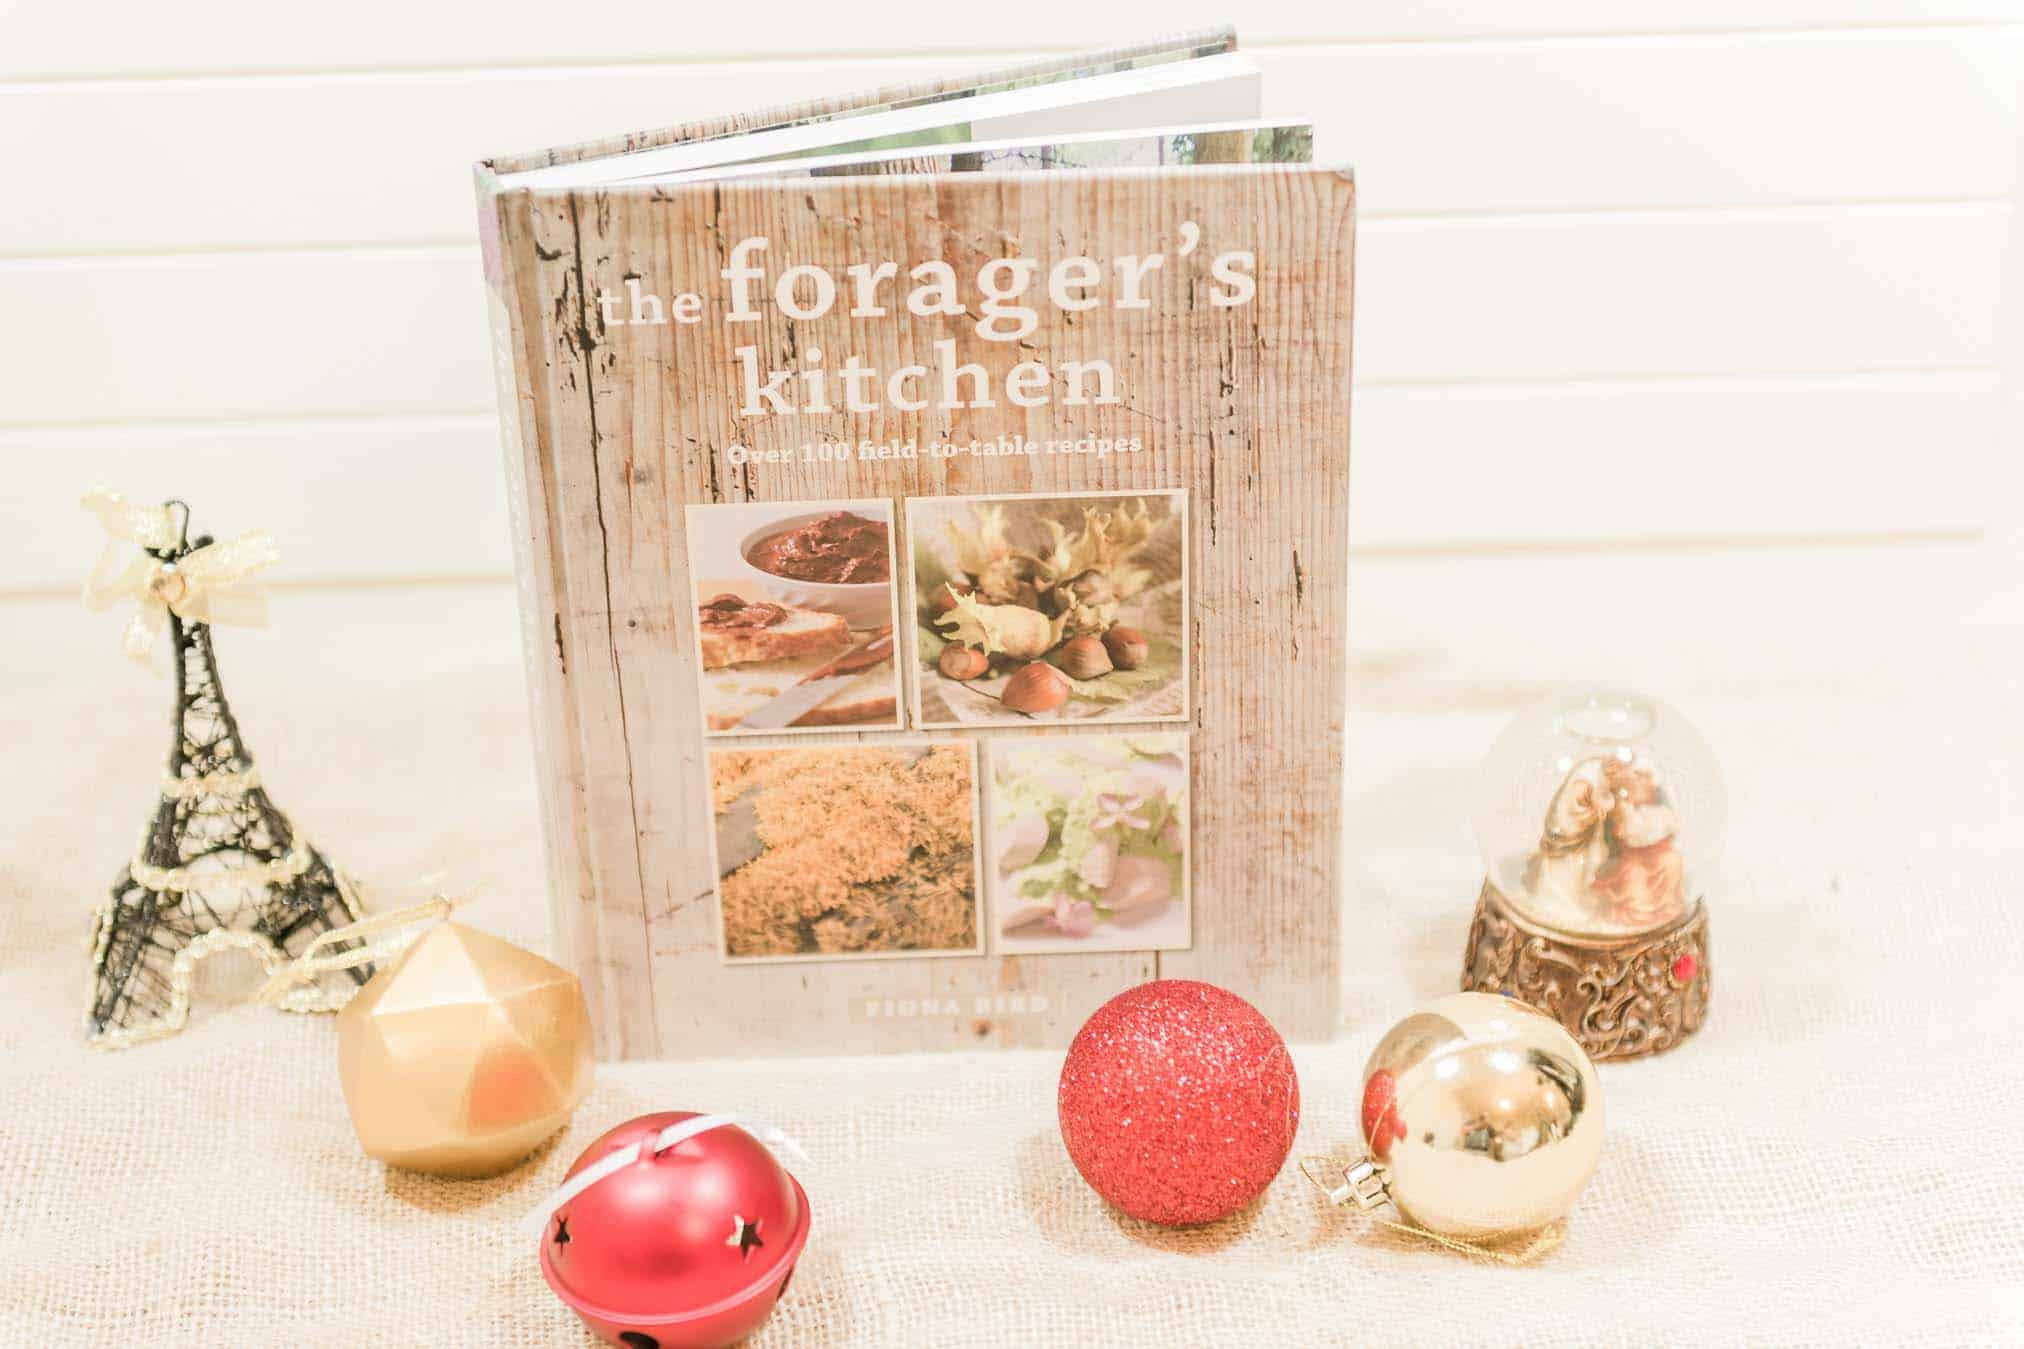 foragers kitchen cook book